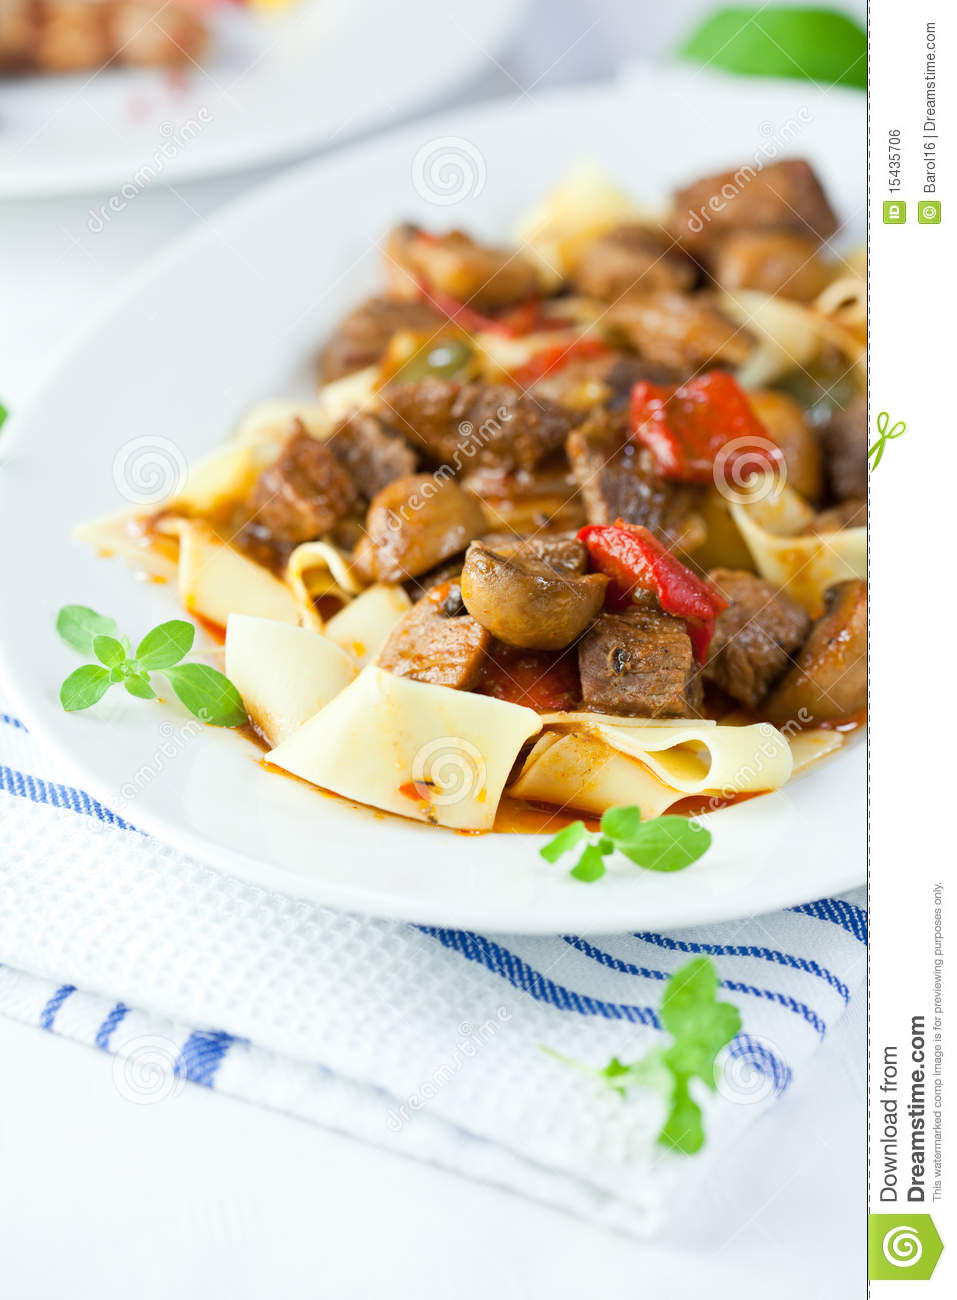 Pappardelle Pasta With Beef Goulash Royalty Free Stock Image - Image ...